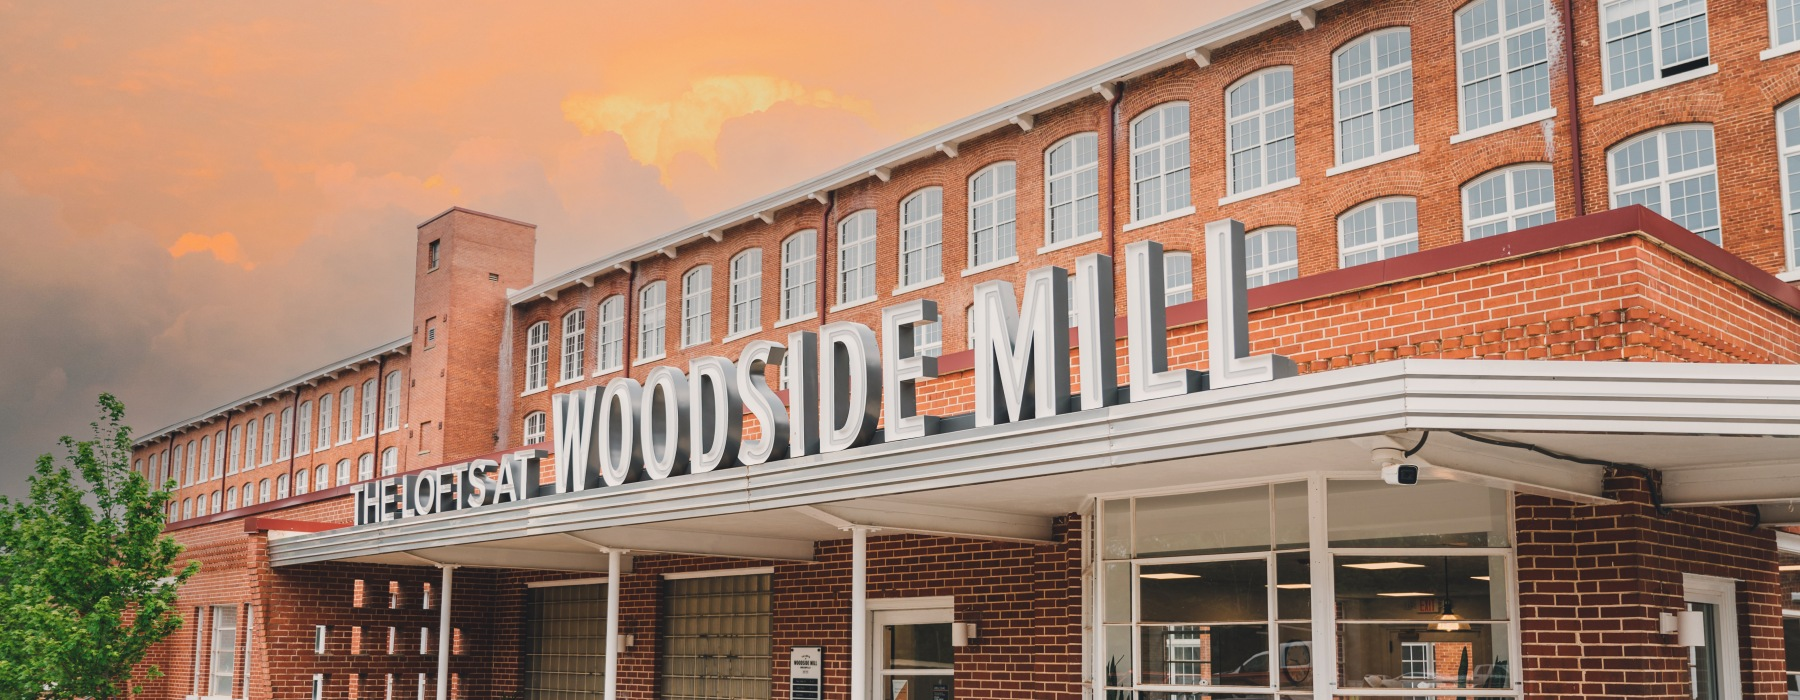 The Lofts at Woodside Mill